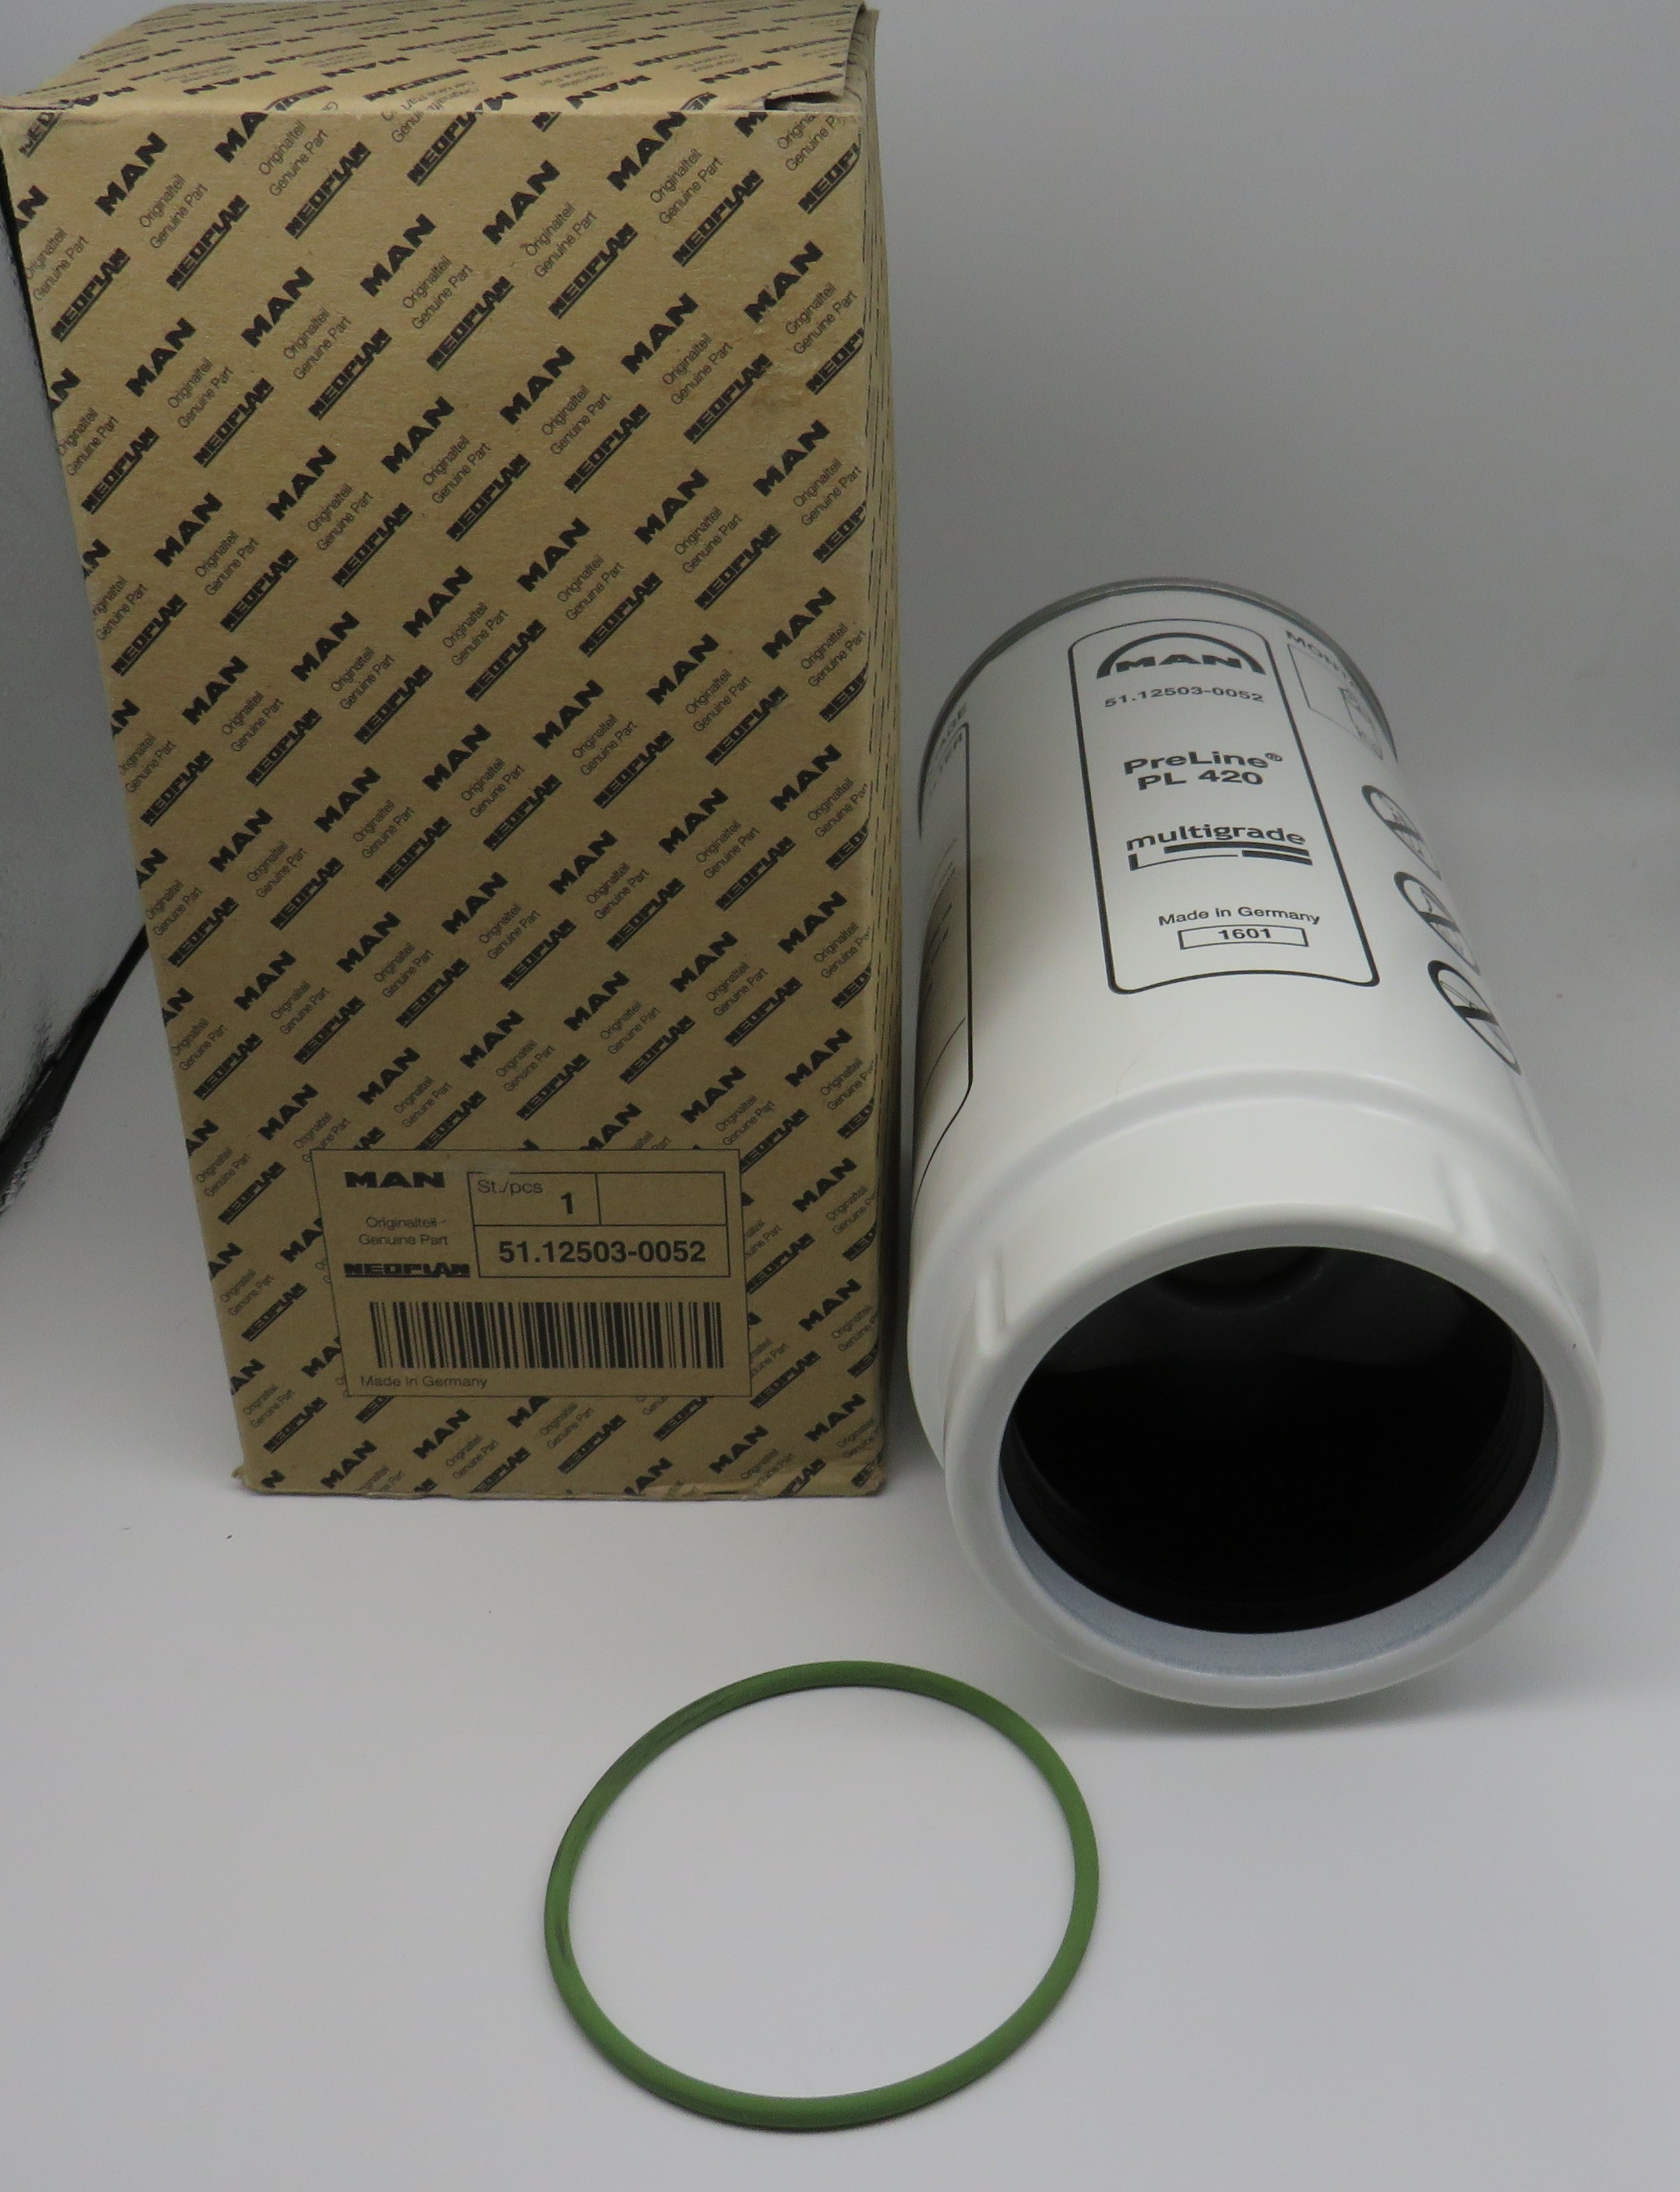 51.12503.0052 MAN Common Rail Primary Fuel Filter